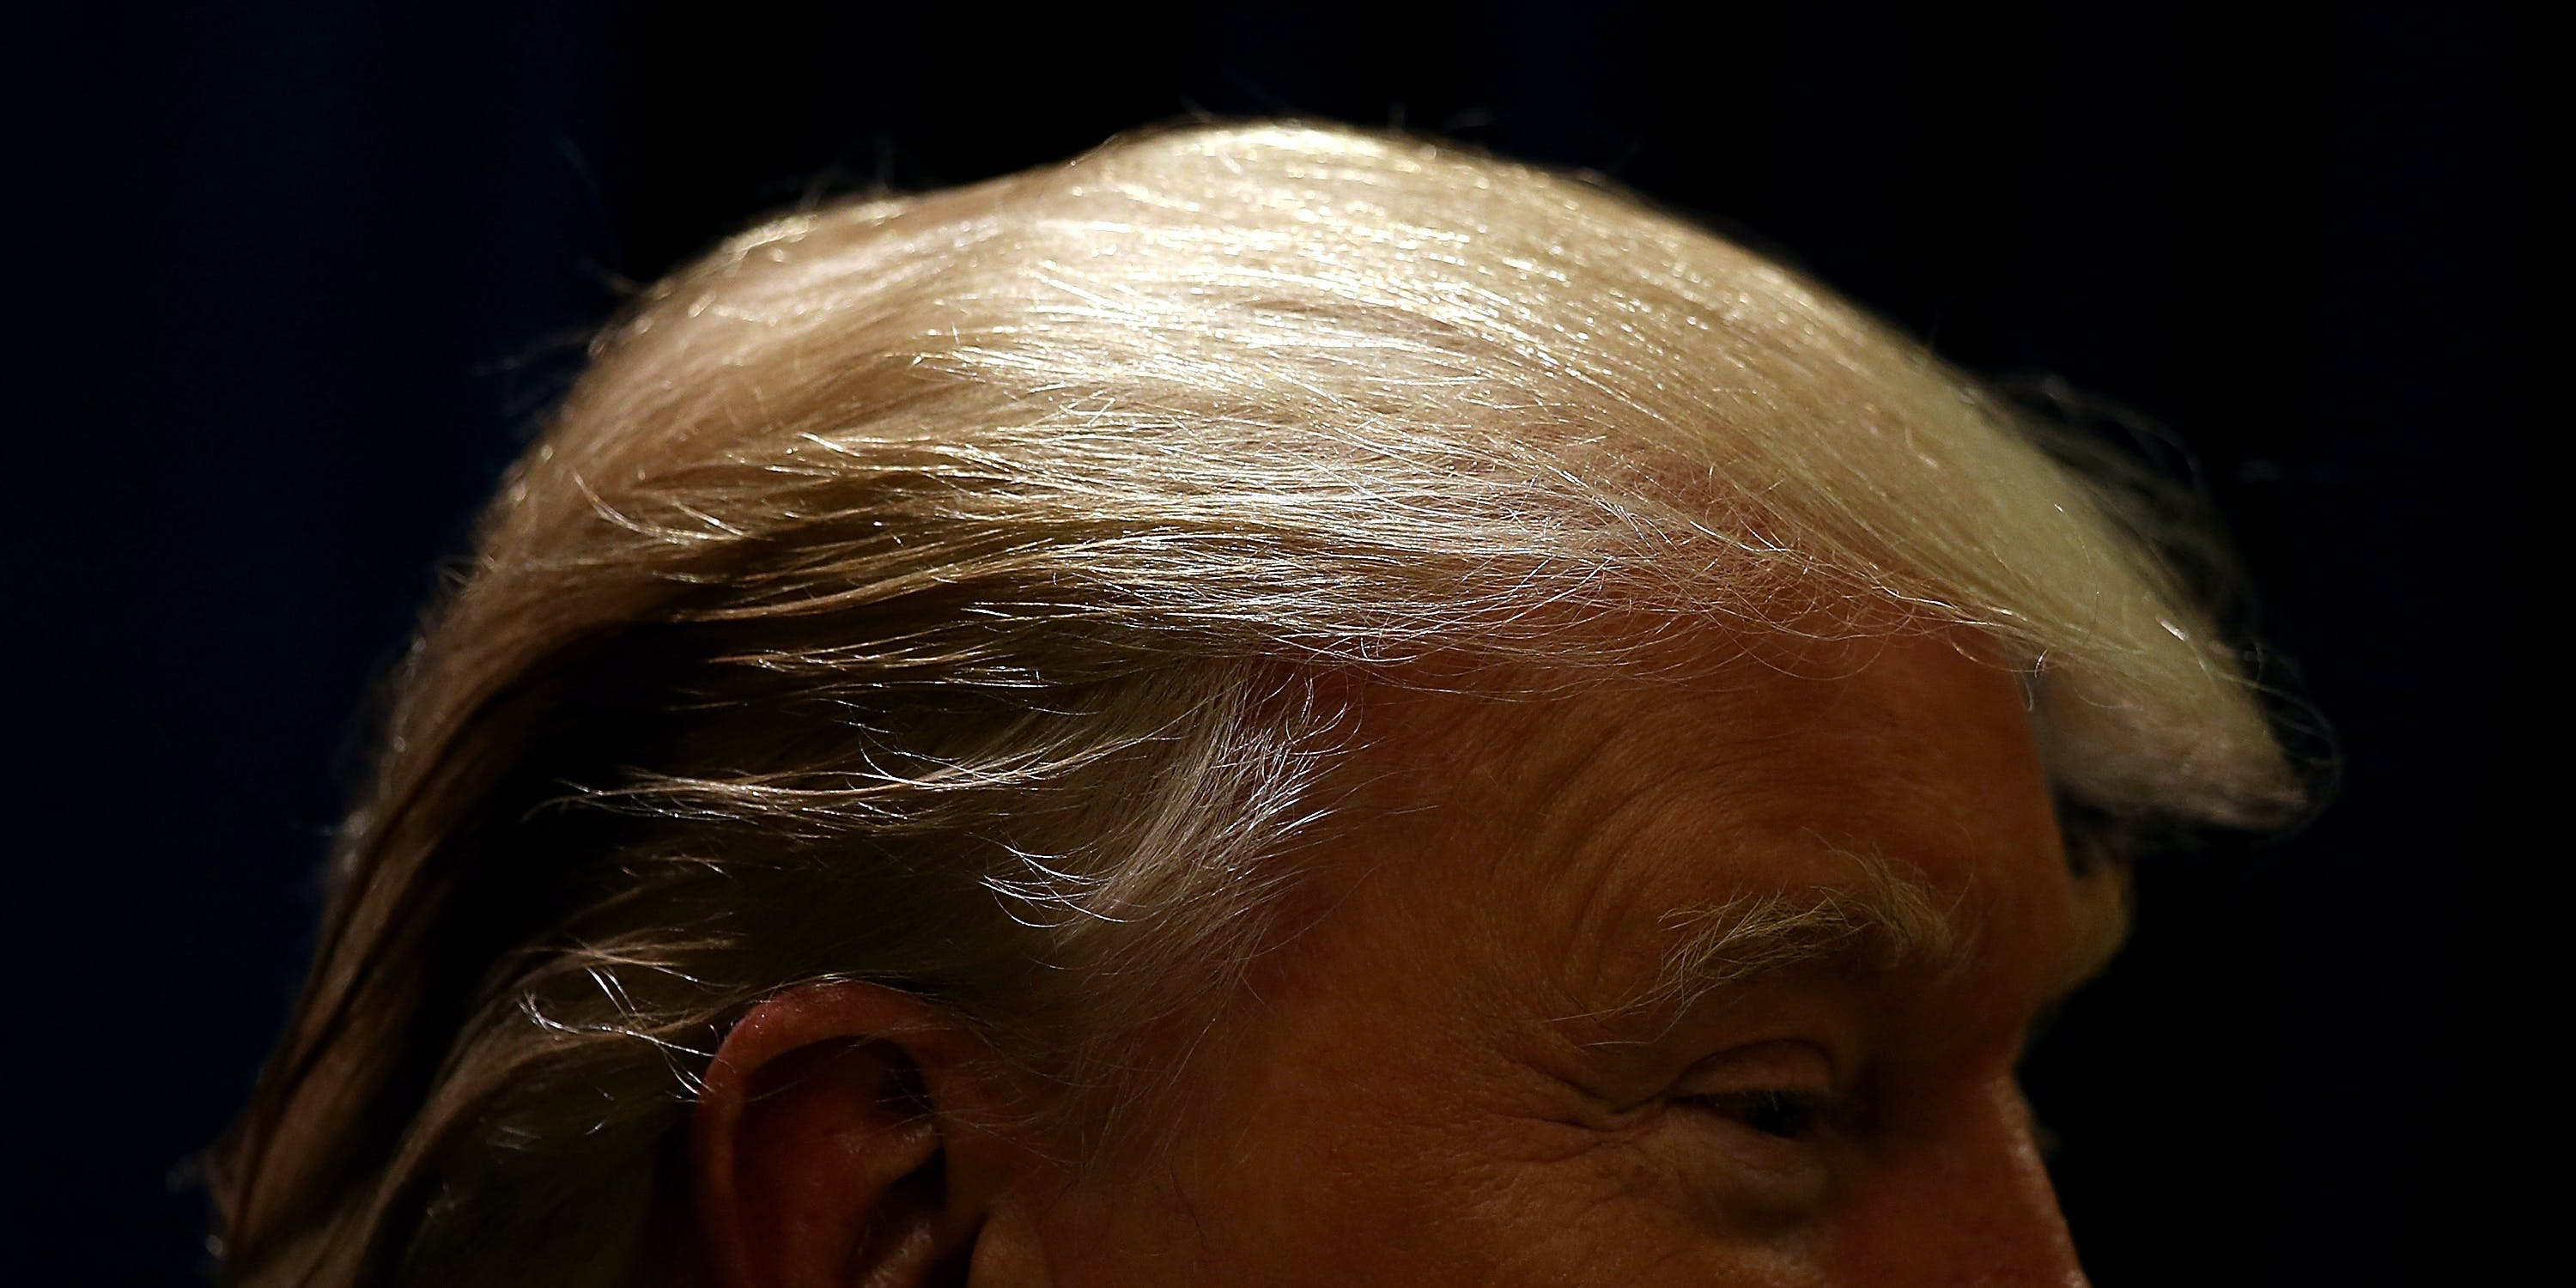 Worried About Trump's Mental Stability? The Worst Is Yet to Come.